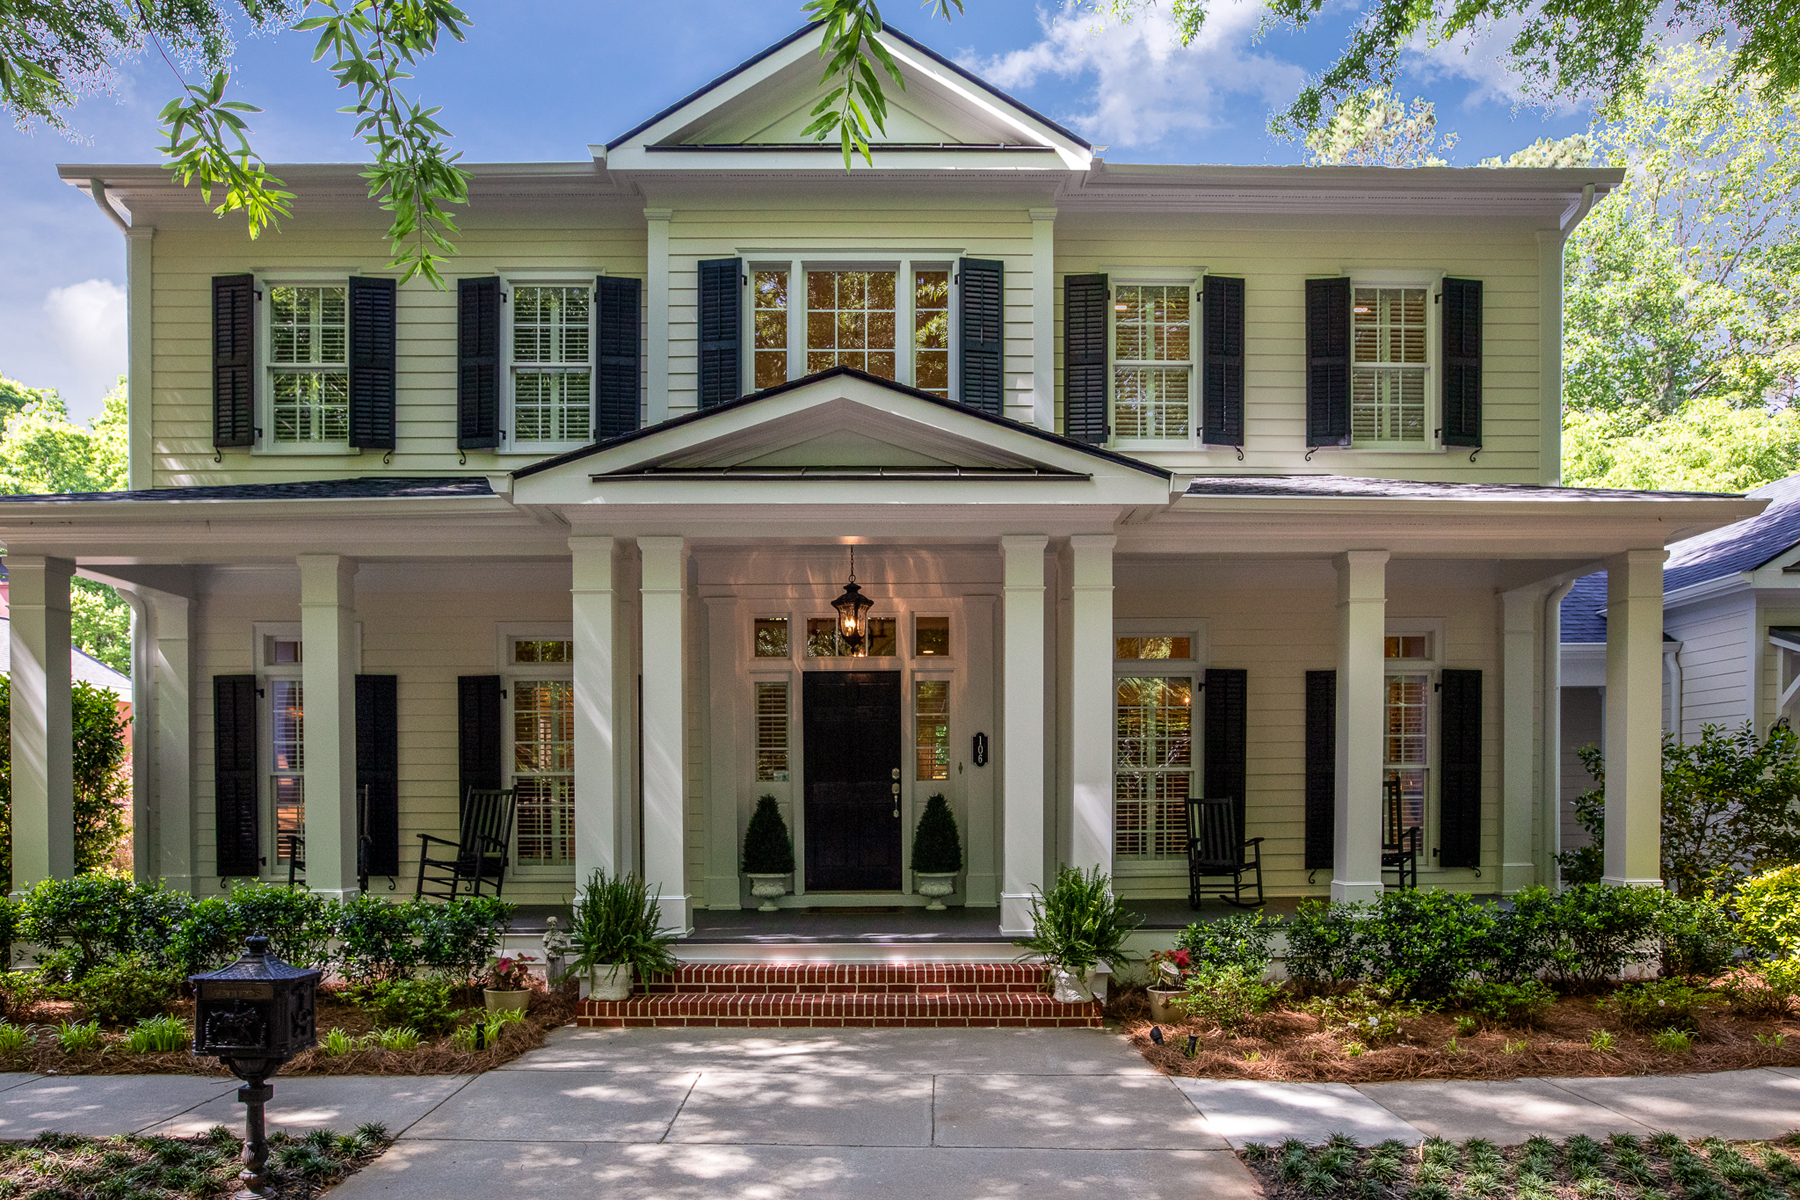 Single Family Homes for Sale at Lake Front Home in North Cove - Peachtree City's Most Sought After Address 106 North Cove Dr Peachtree City, Georgia 30269 United States